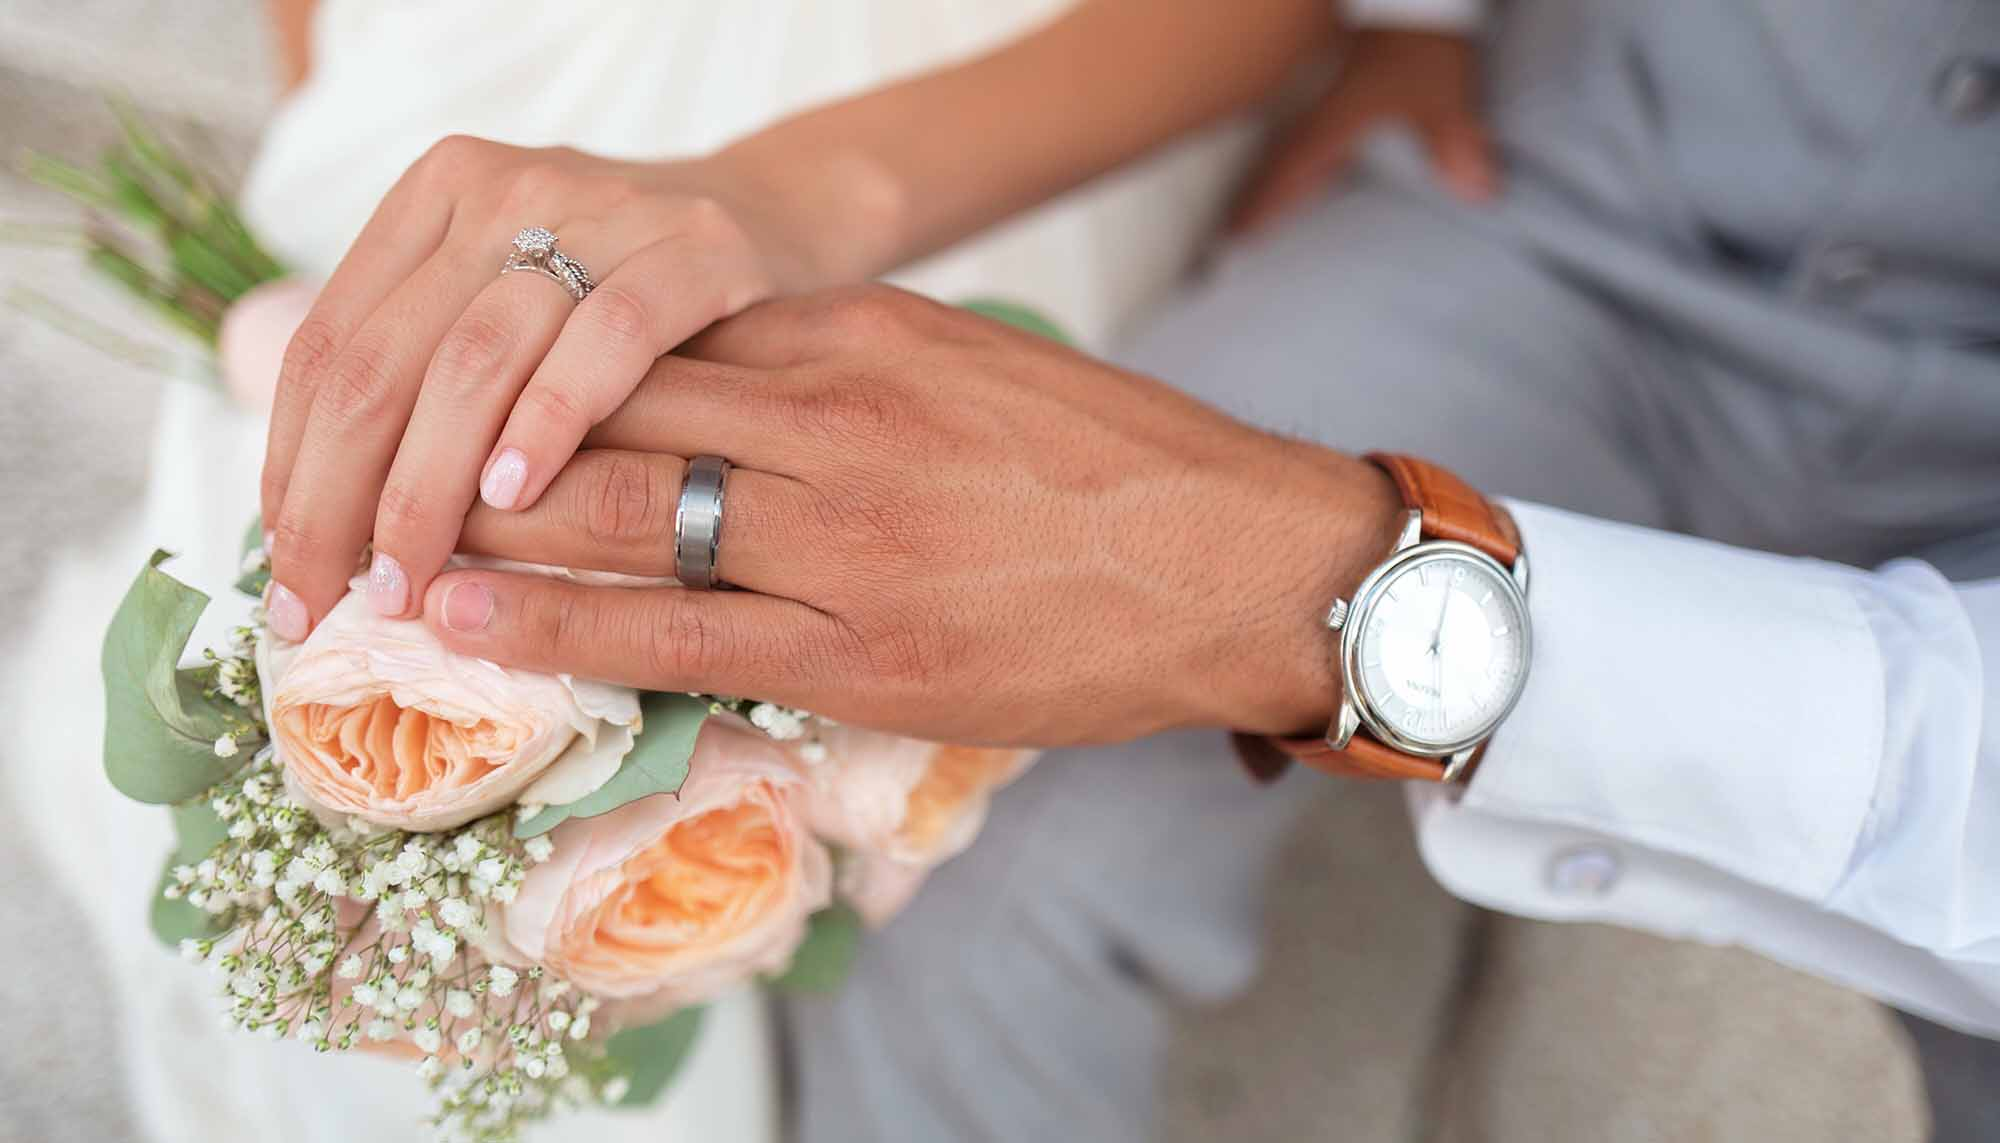 How to Avoid the Loss and Deterioration of your Wedding Ring